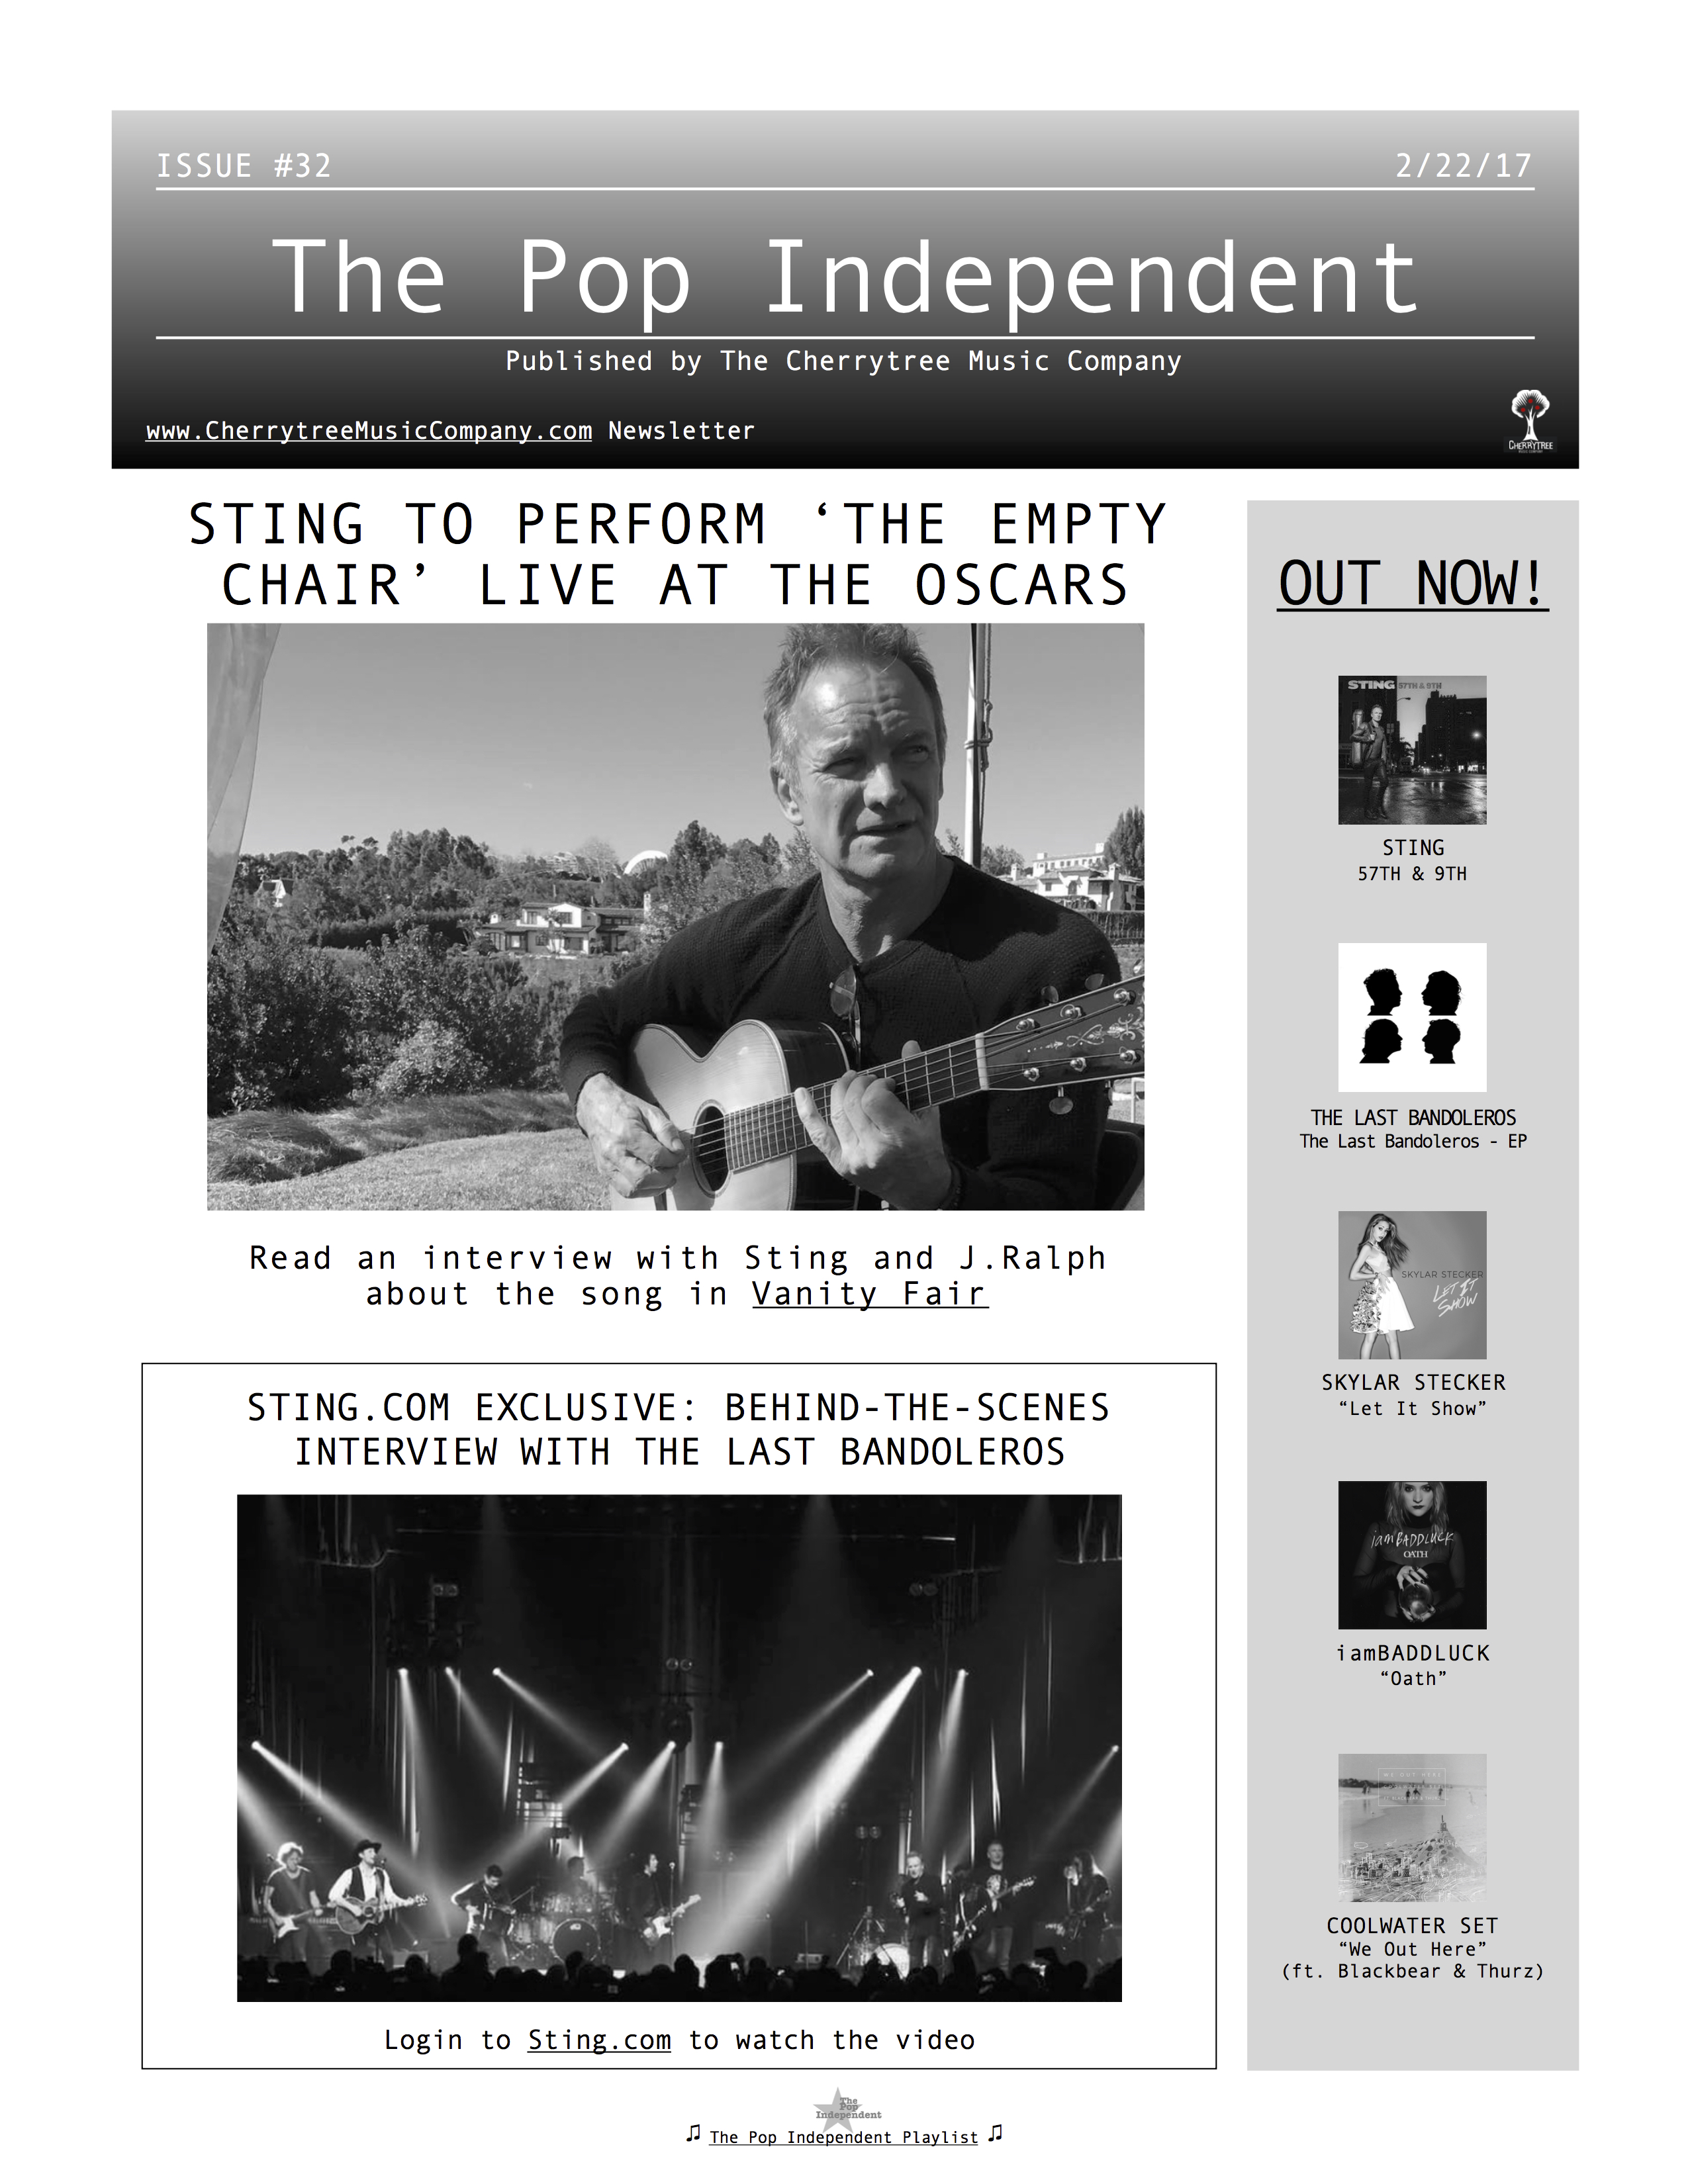 The Pop Independent, issue 32